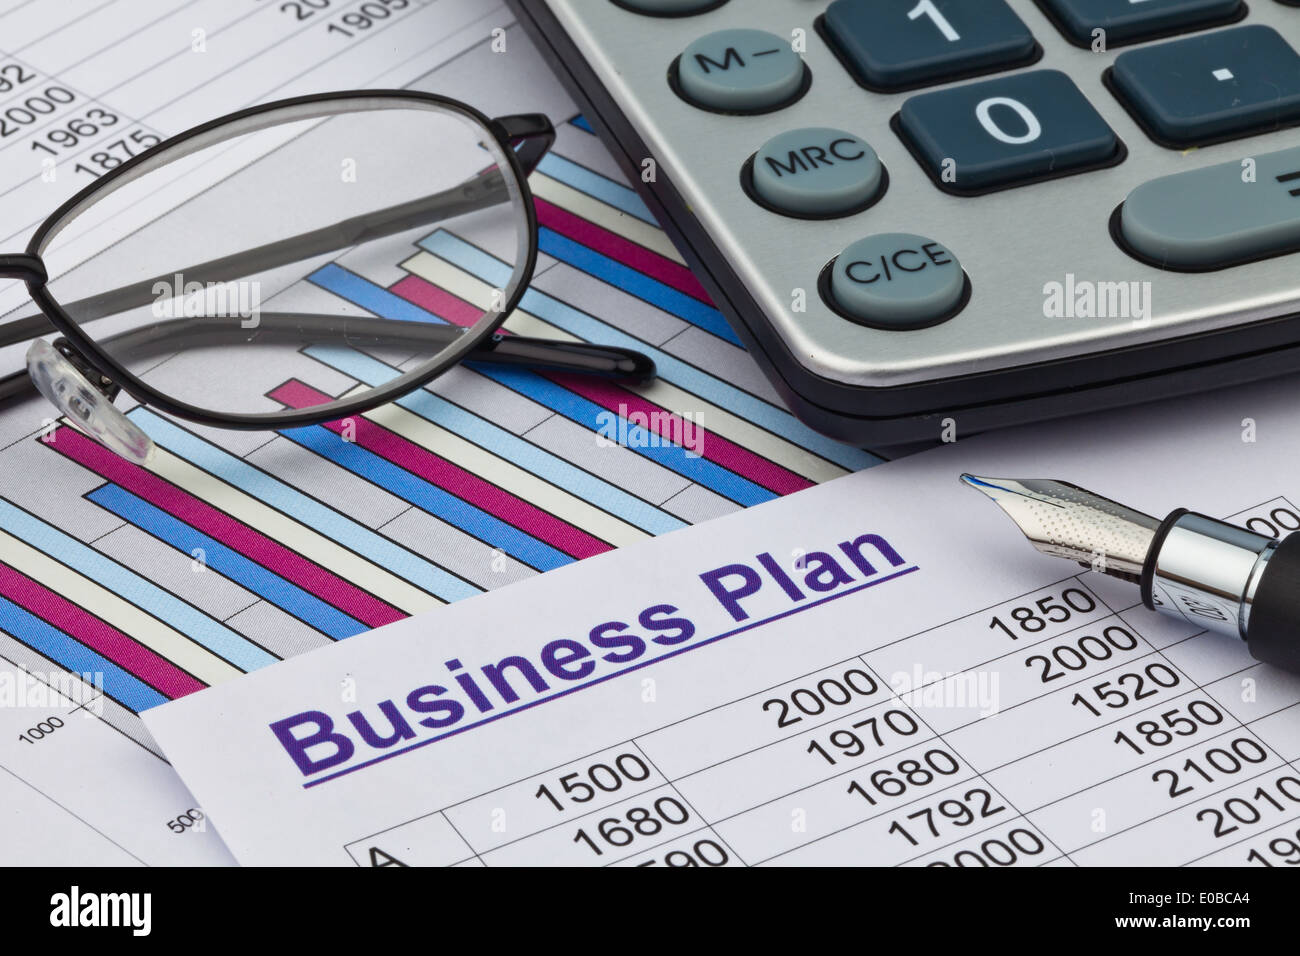 The business plan for companies or company foundation. Planning of a Jung's enterpriser., Der Businessplan fuer eine Firmen oder - Stock Image